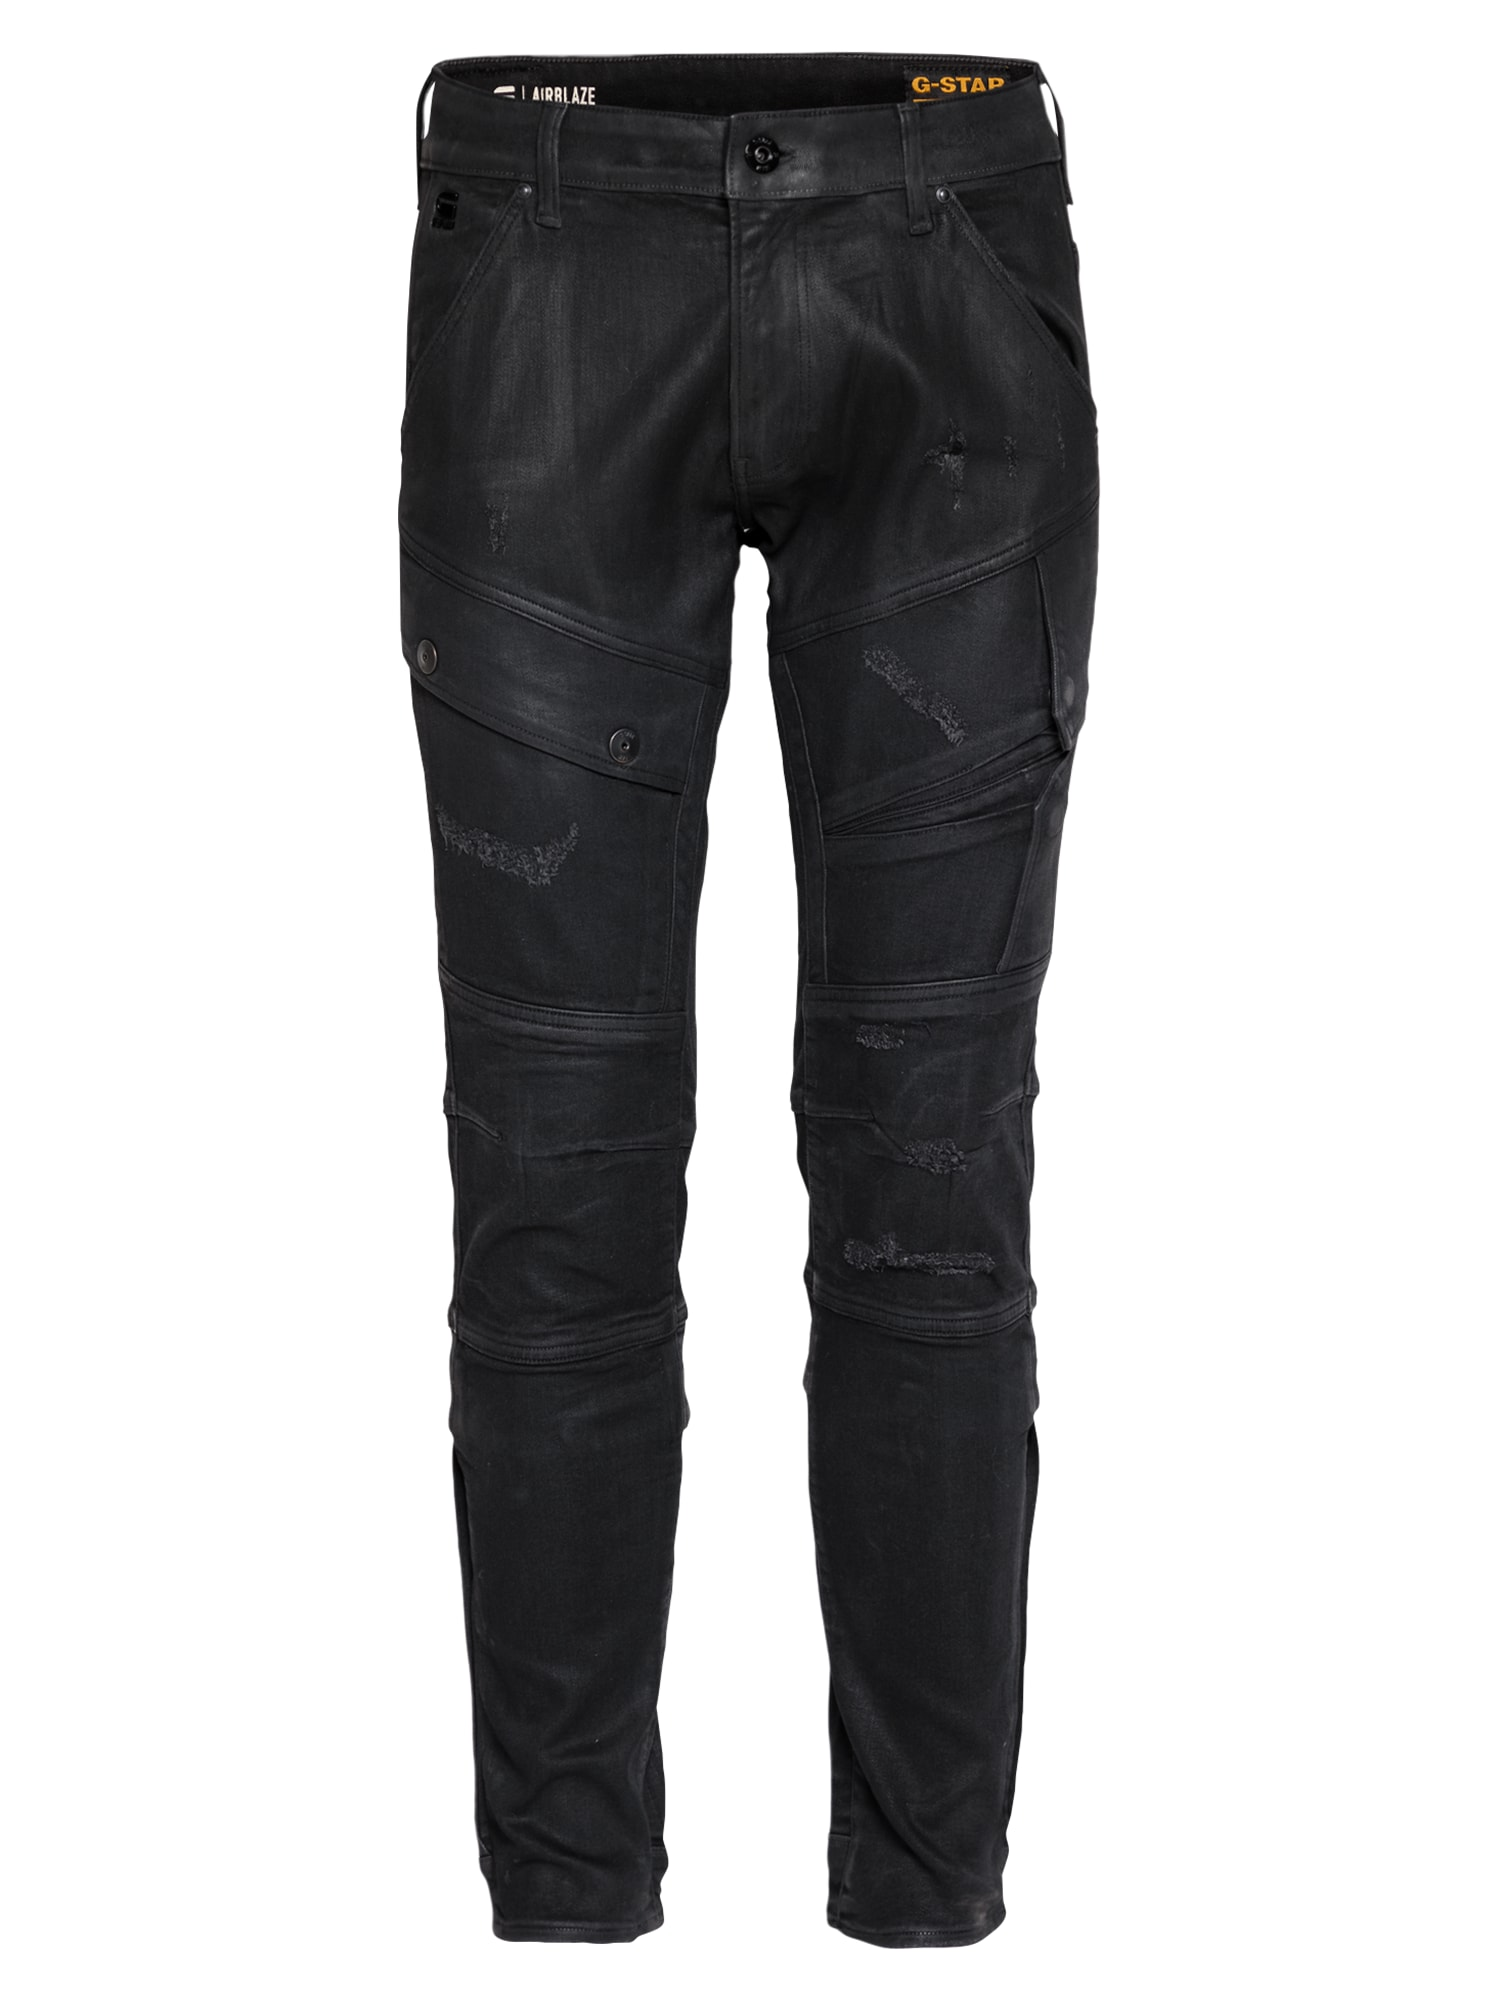 G-Star RAW Darbinio stiliaus džinsai